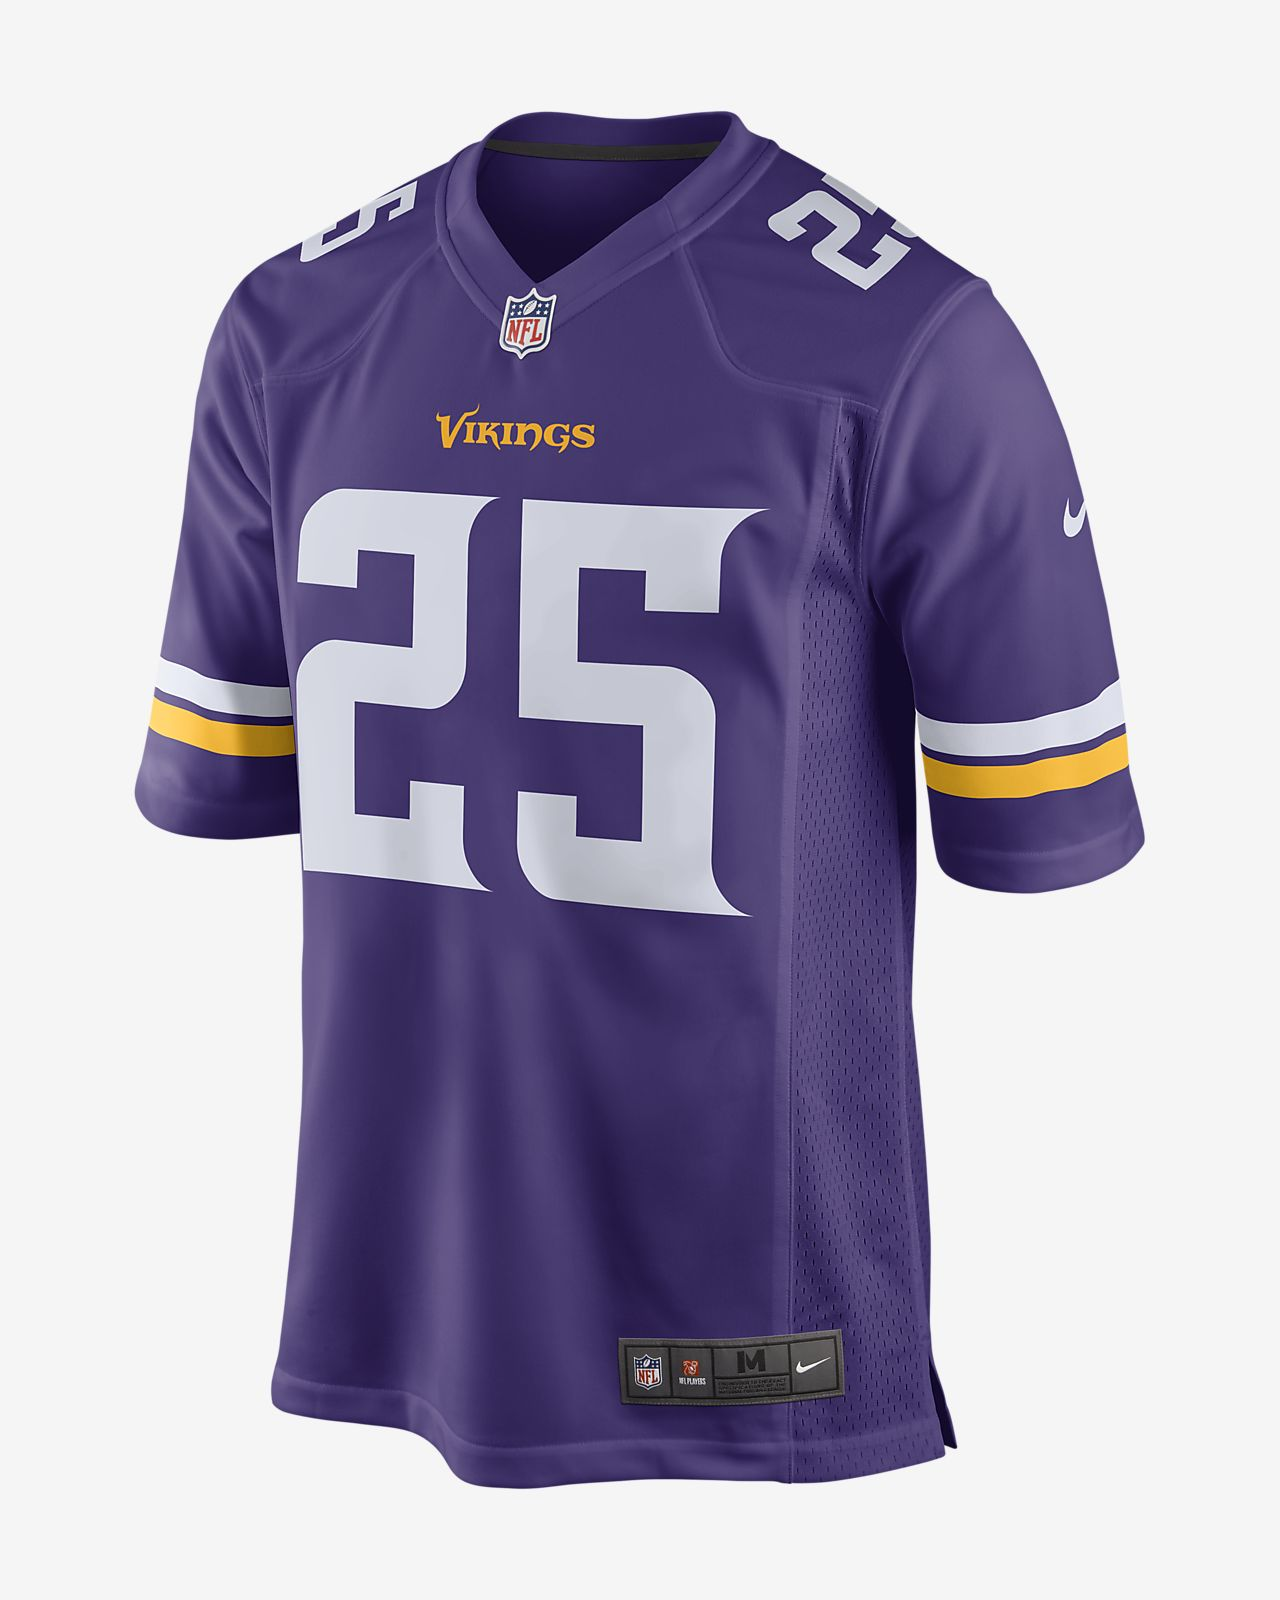 NFL Minnesota Vikings (Latavius Murray) Men's American Football Home Game Jersey